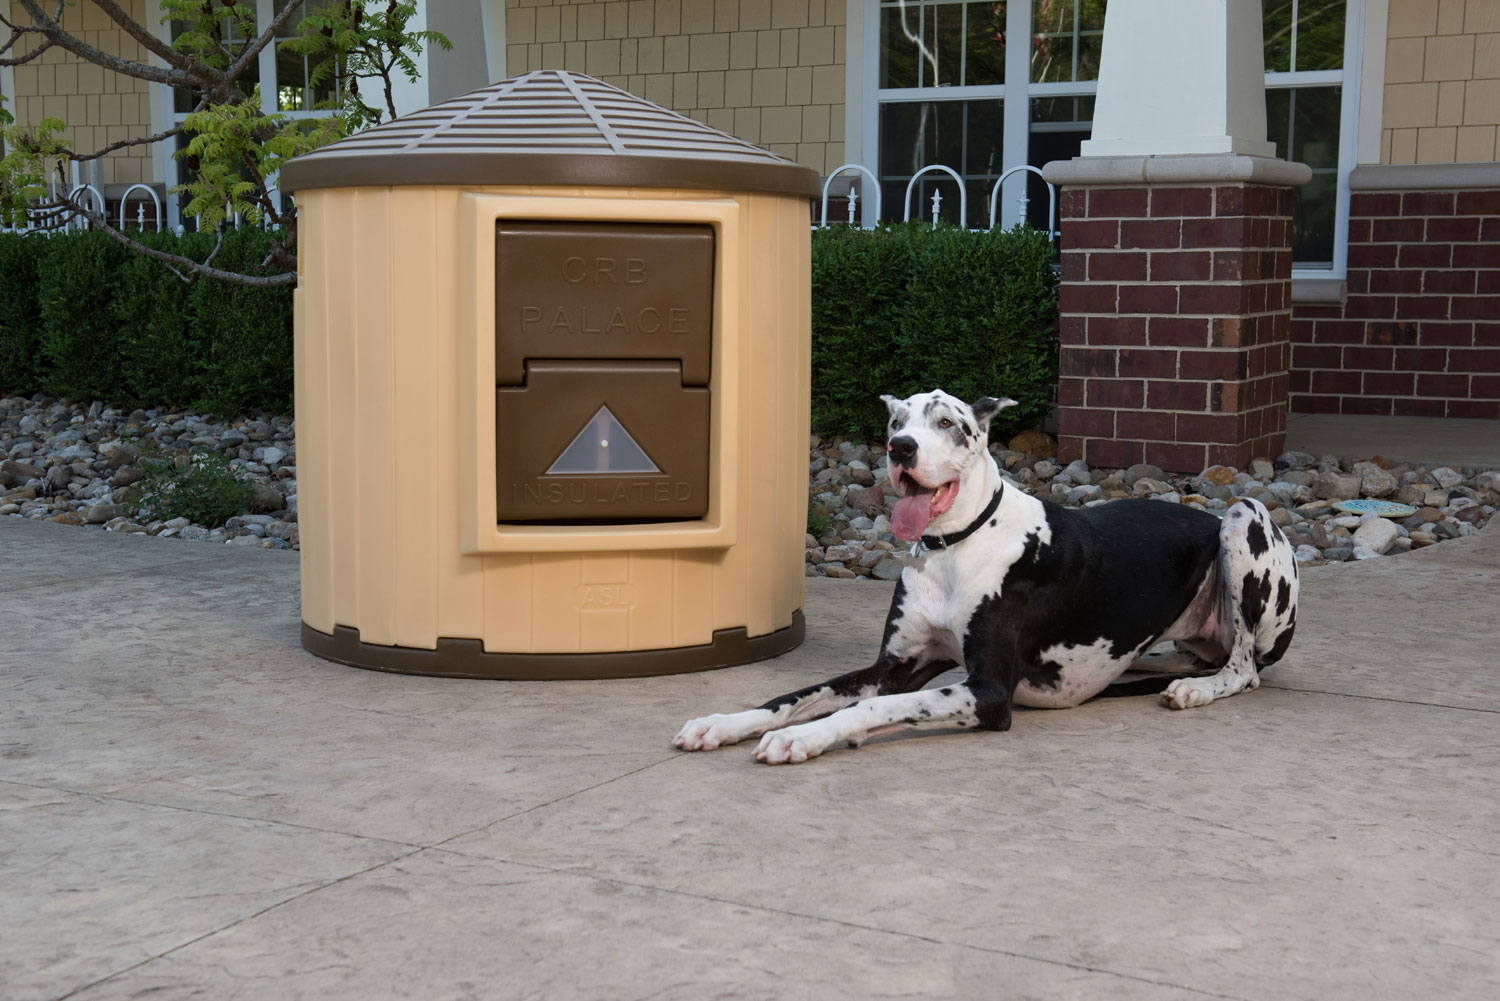 Dog Palace Insulated Doghouse - Insulated Doghouses by ASL Solutions on